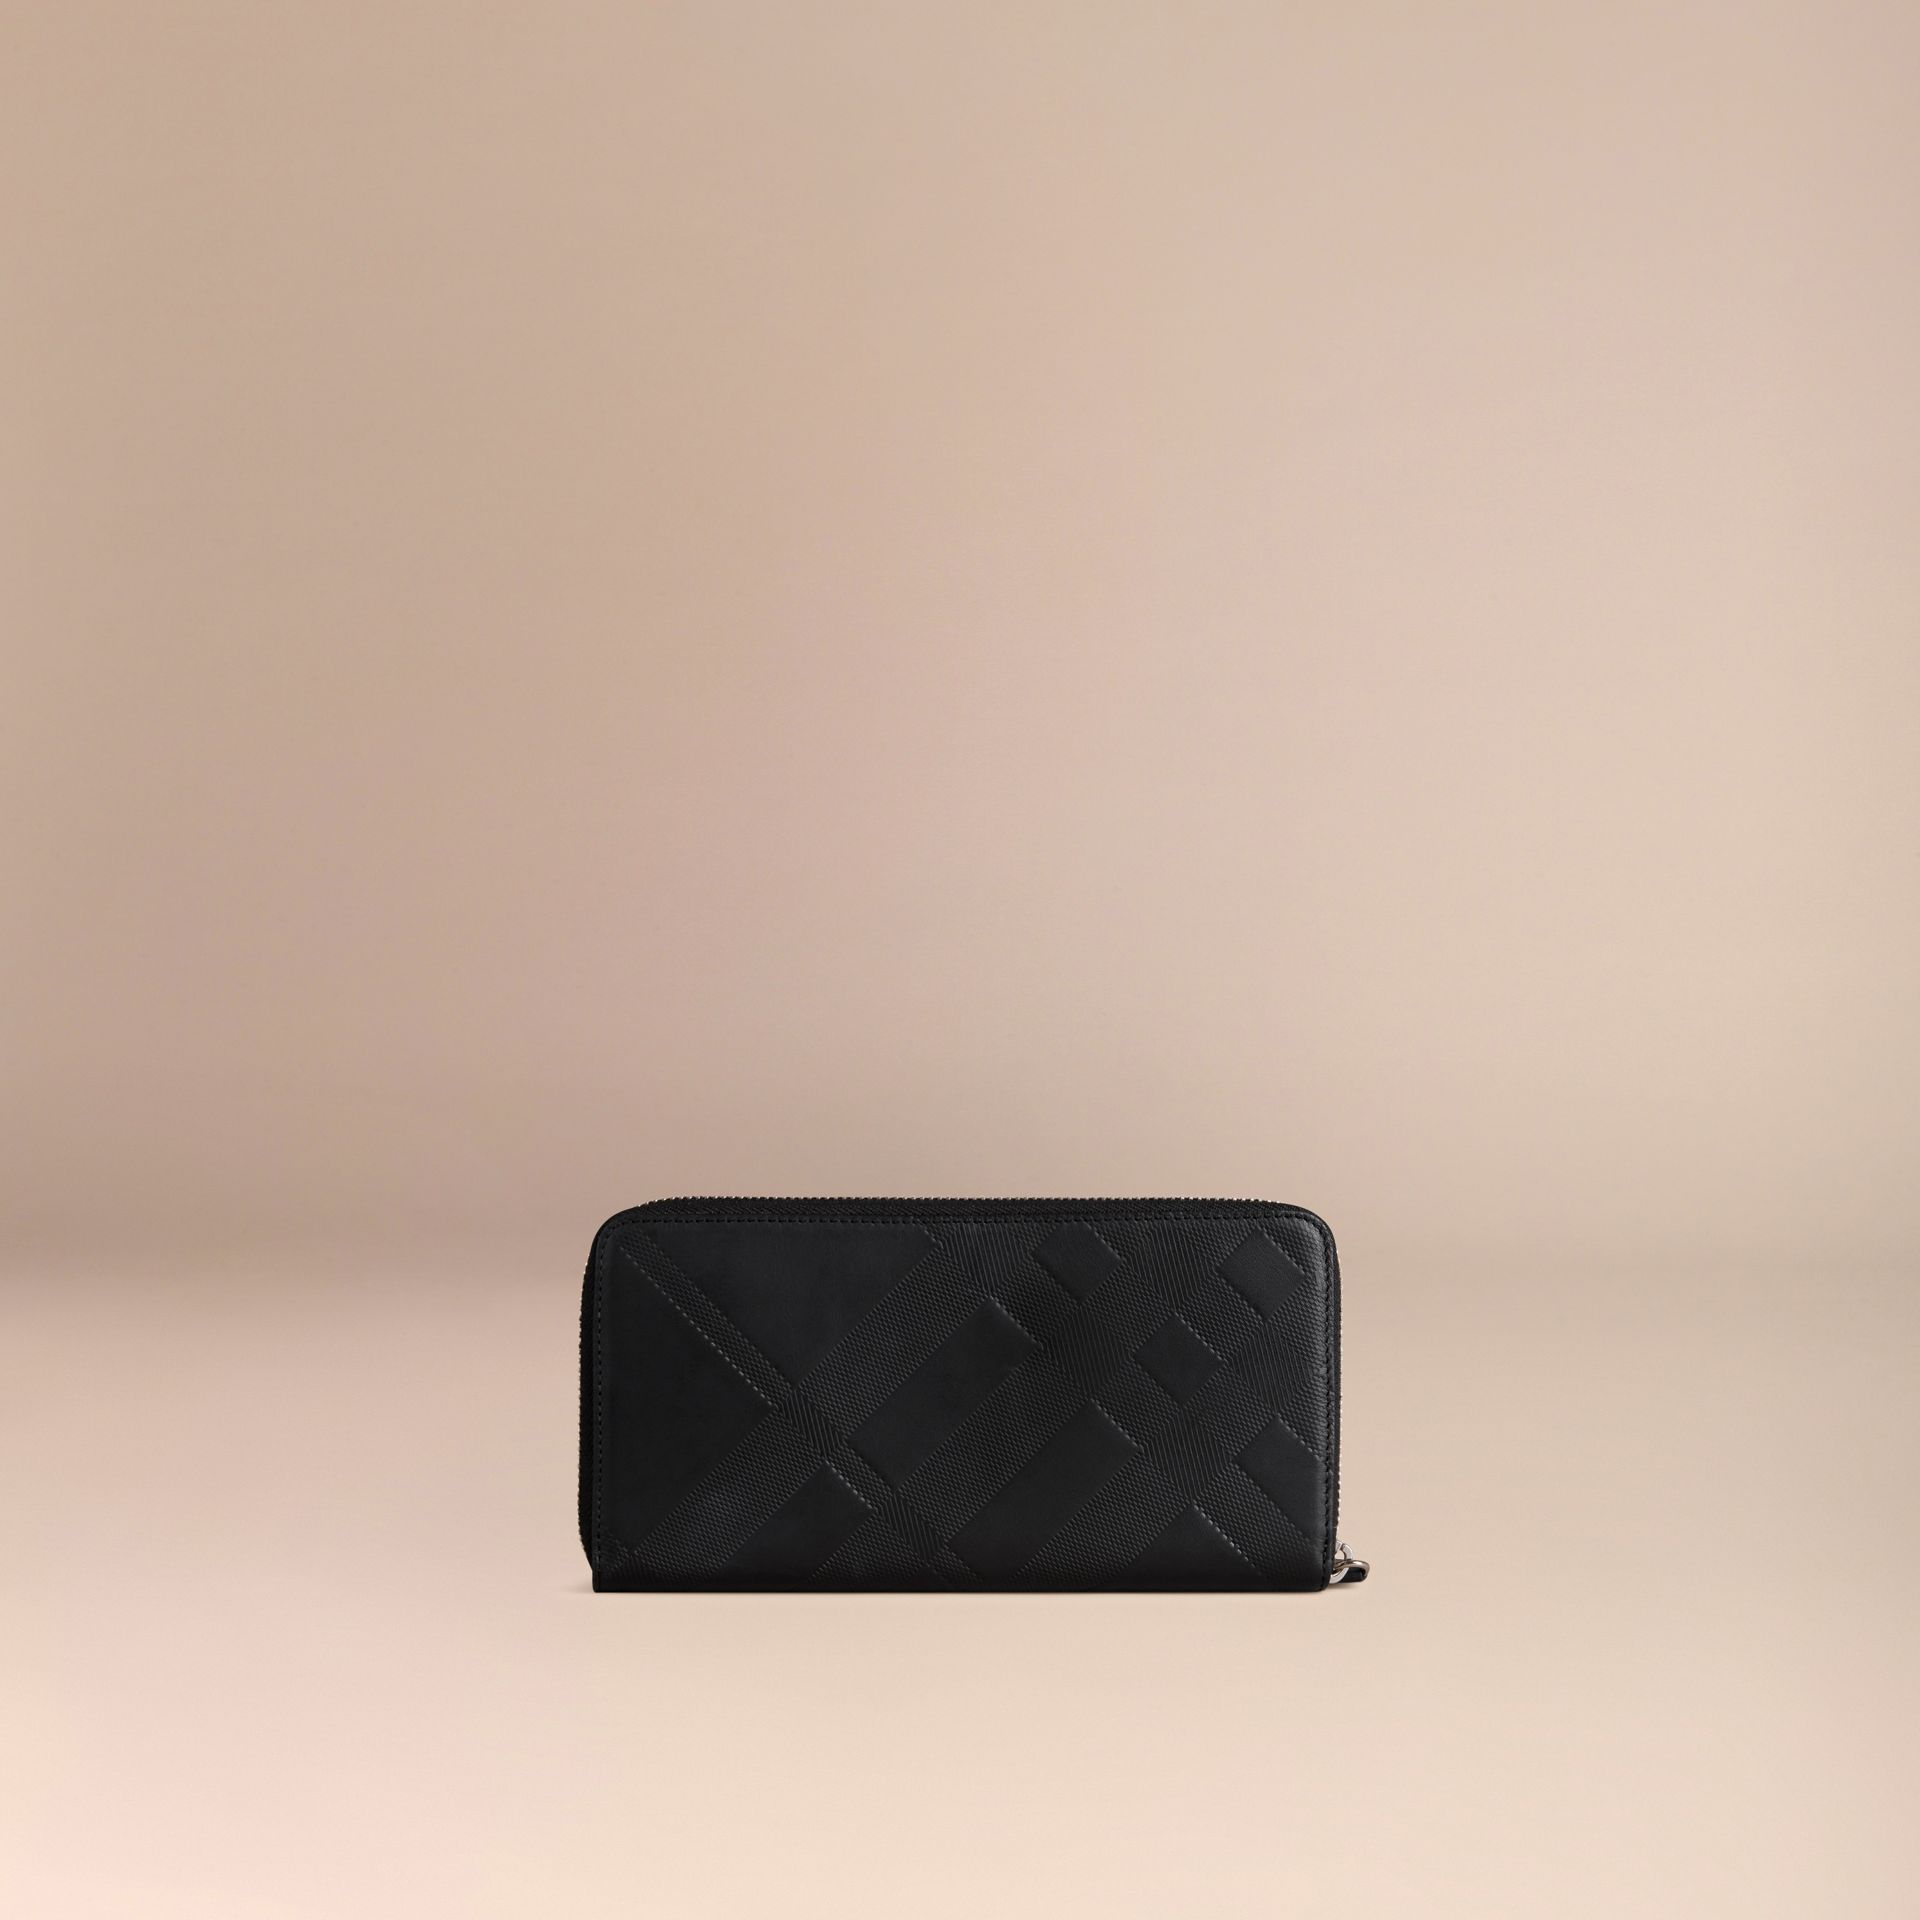 Black Check-embossed Leather Ziparound Wallet Black - gallery image 4